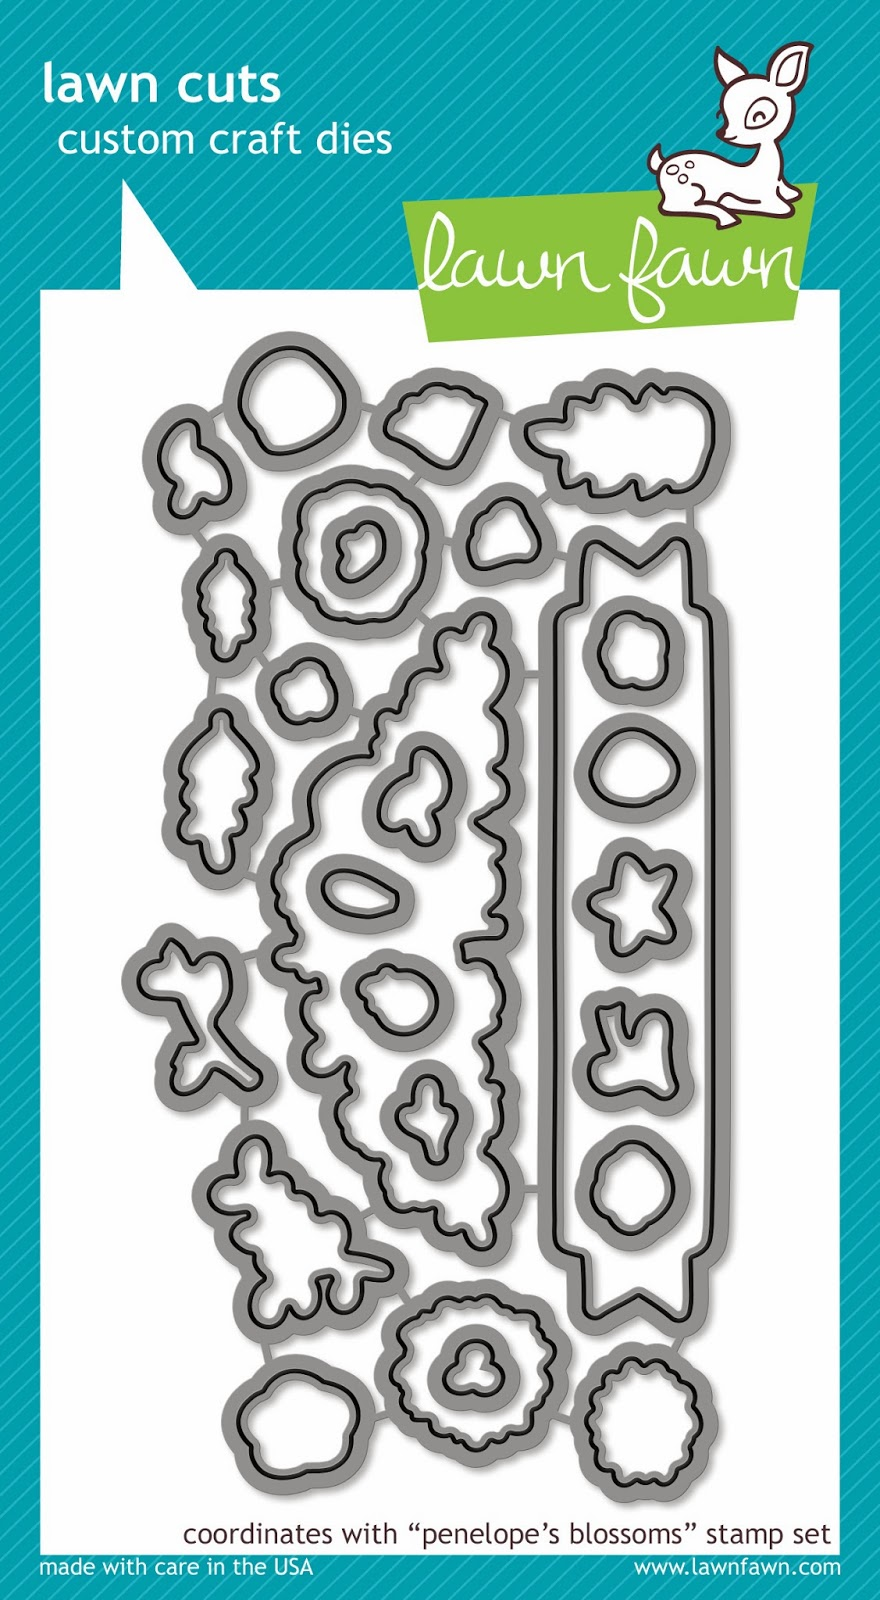 http://www.lawnfawn.com/collections/new-products/products/penelopes-blossoms-lawn-cuts